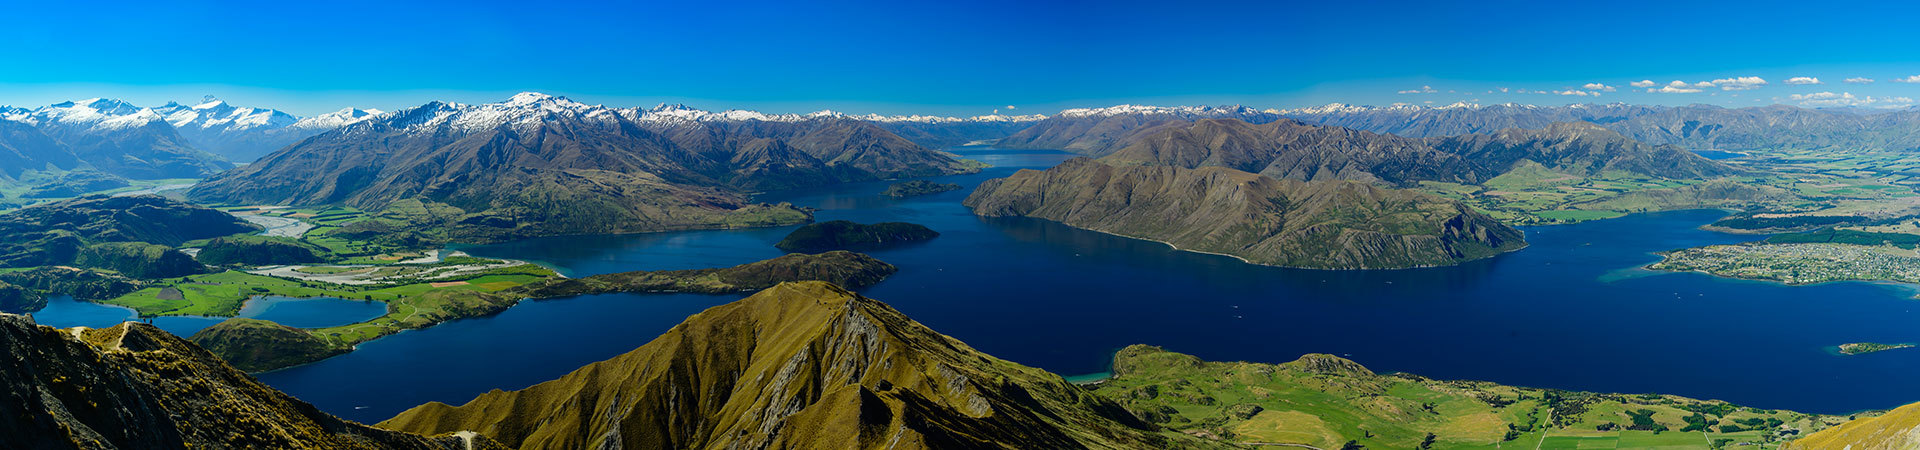 South Island New Zealand scenery of mountains and lakes